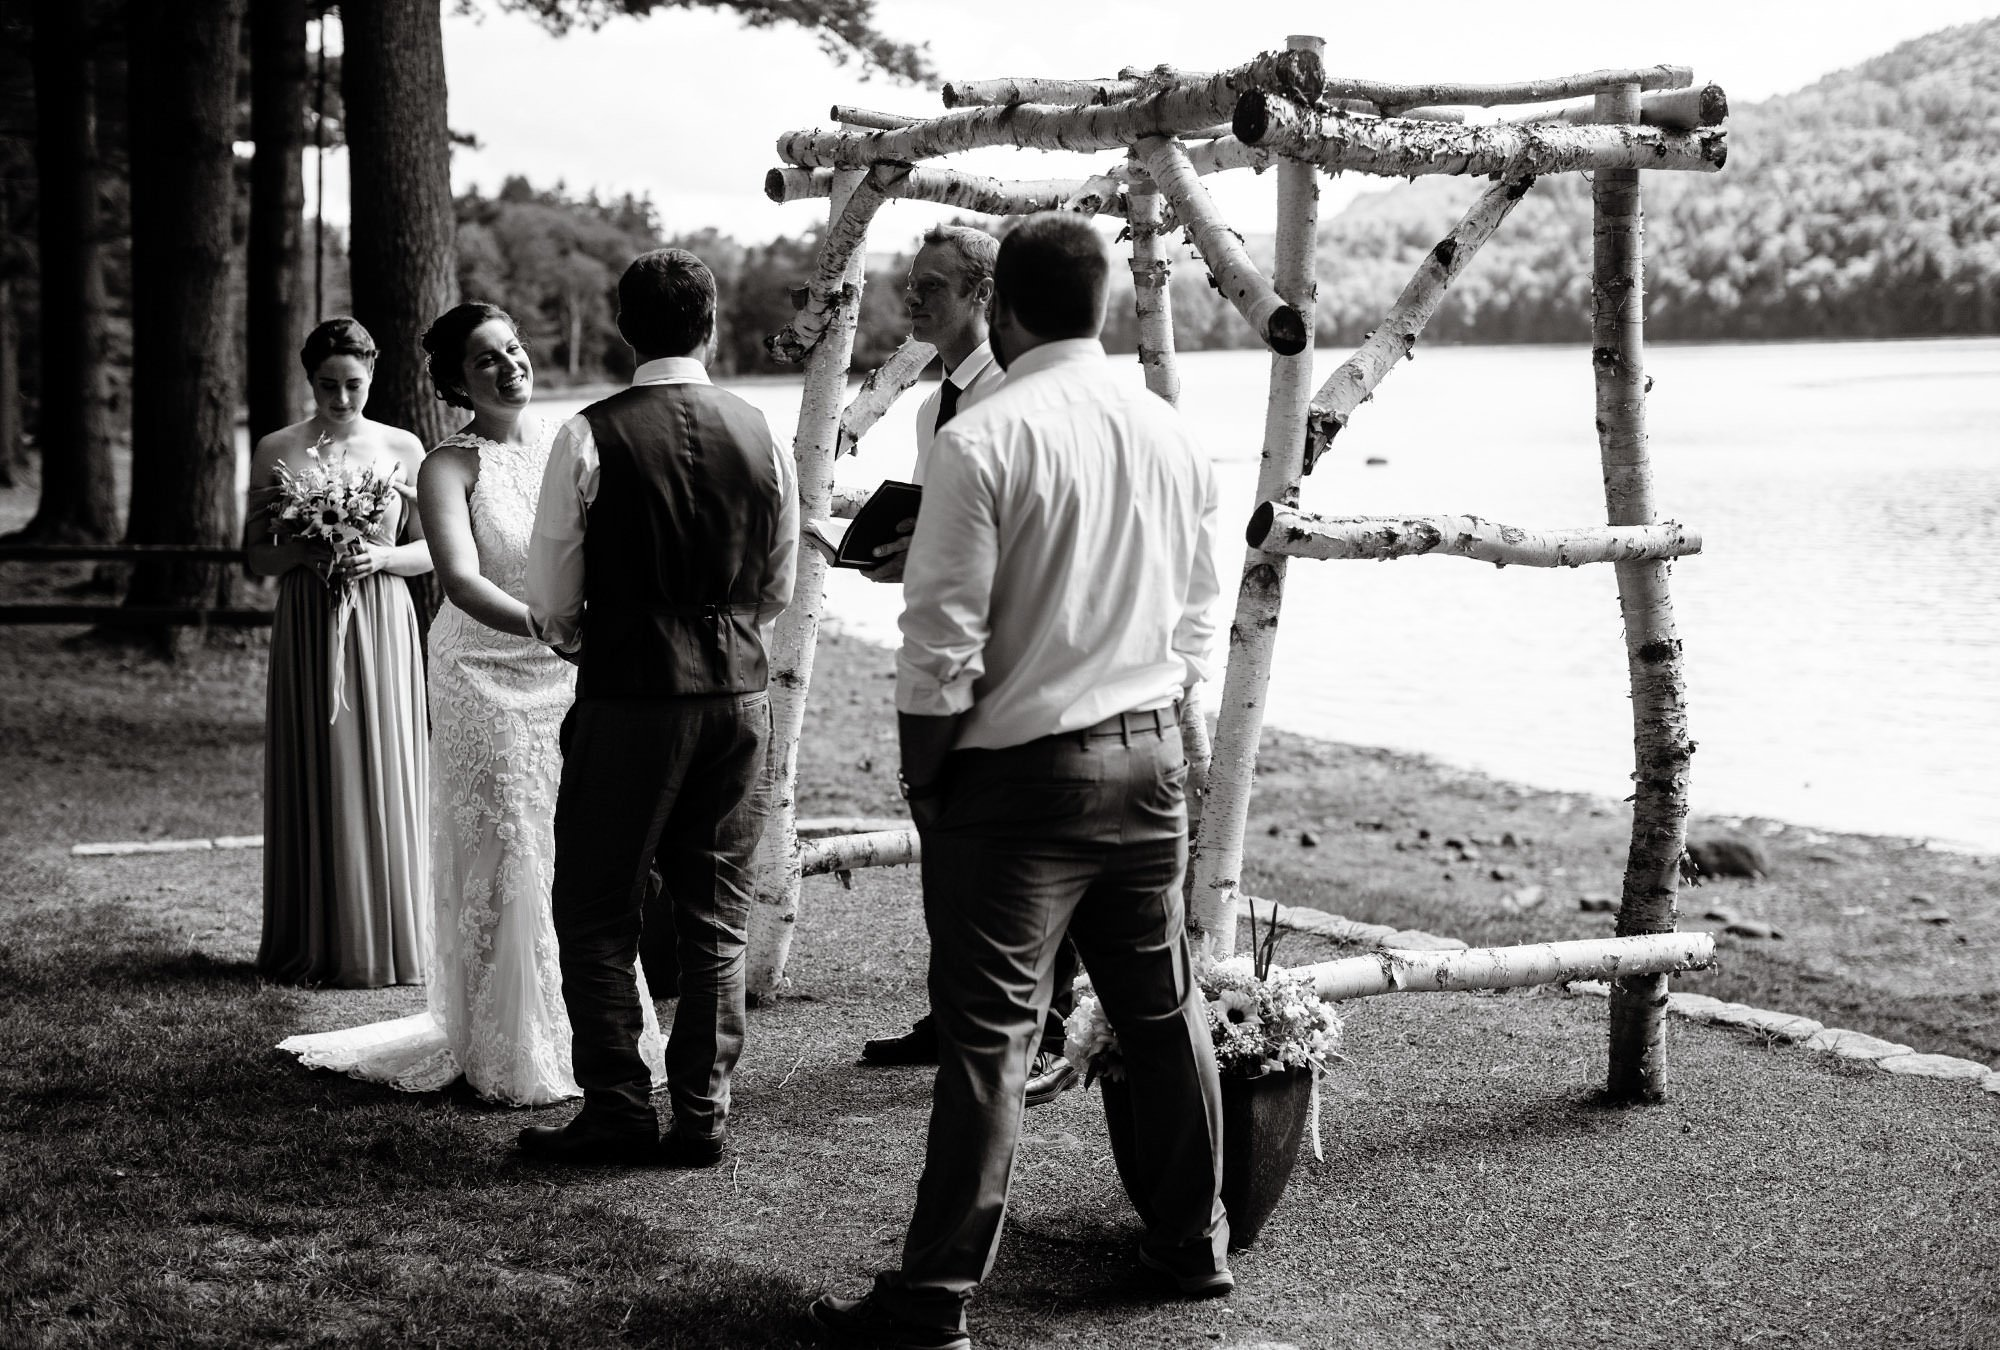 Maine Lakeside Cabin wedding  I  The wedding party participates in the ceremony along Wyman Lake.